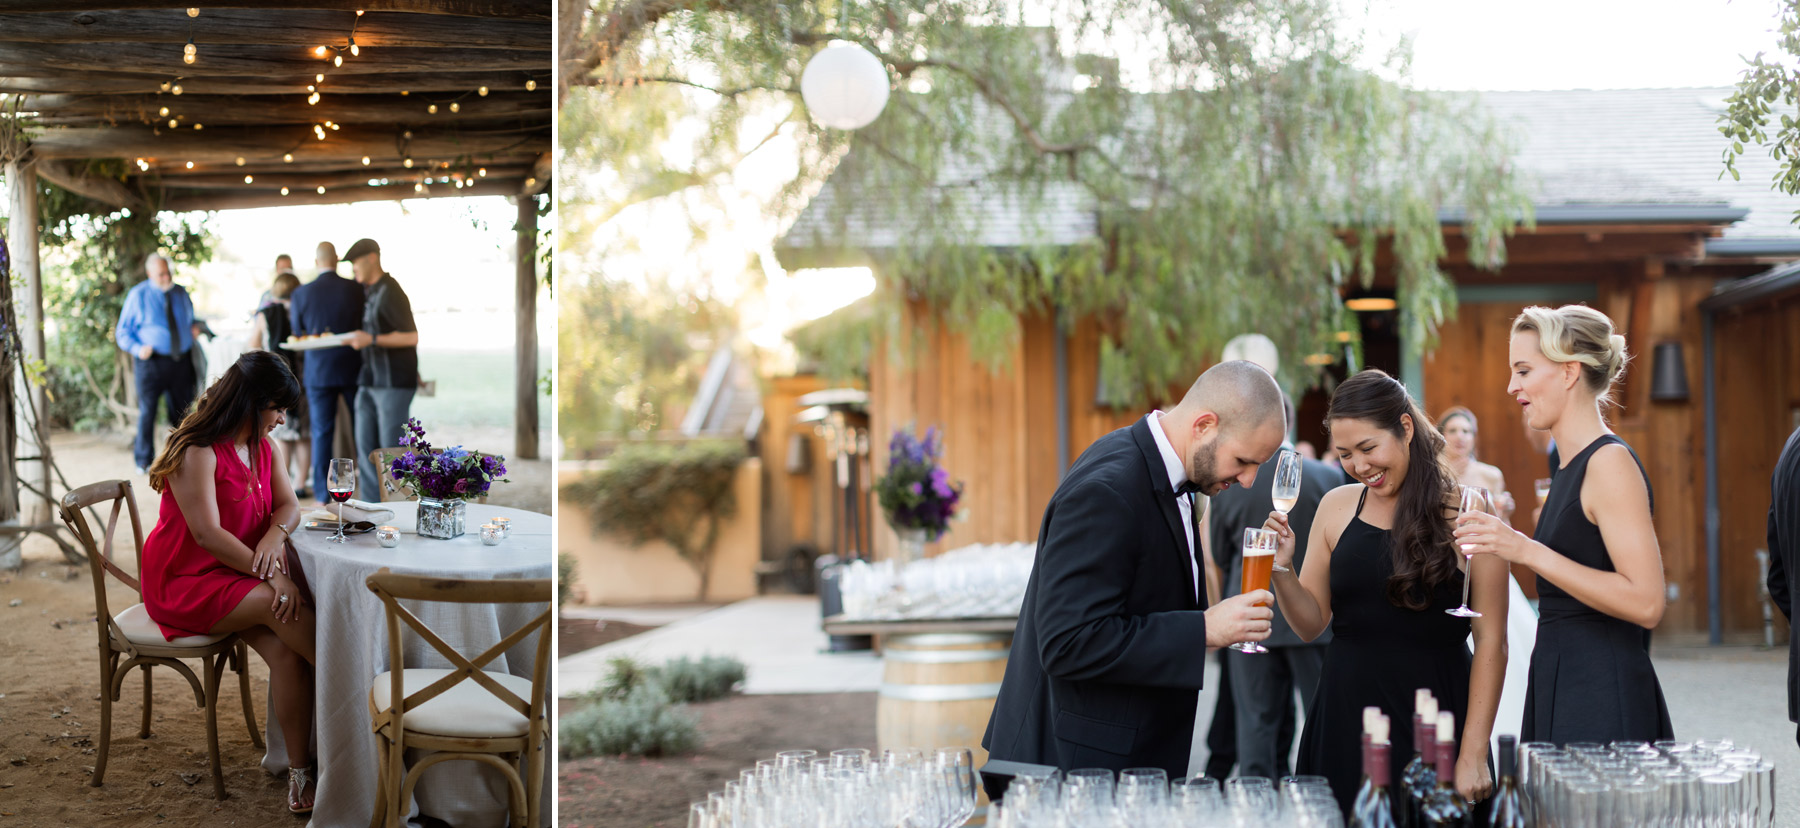 wedding at the roblar winery